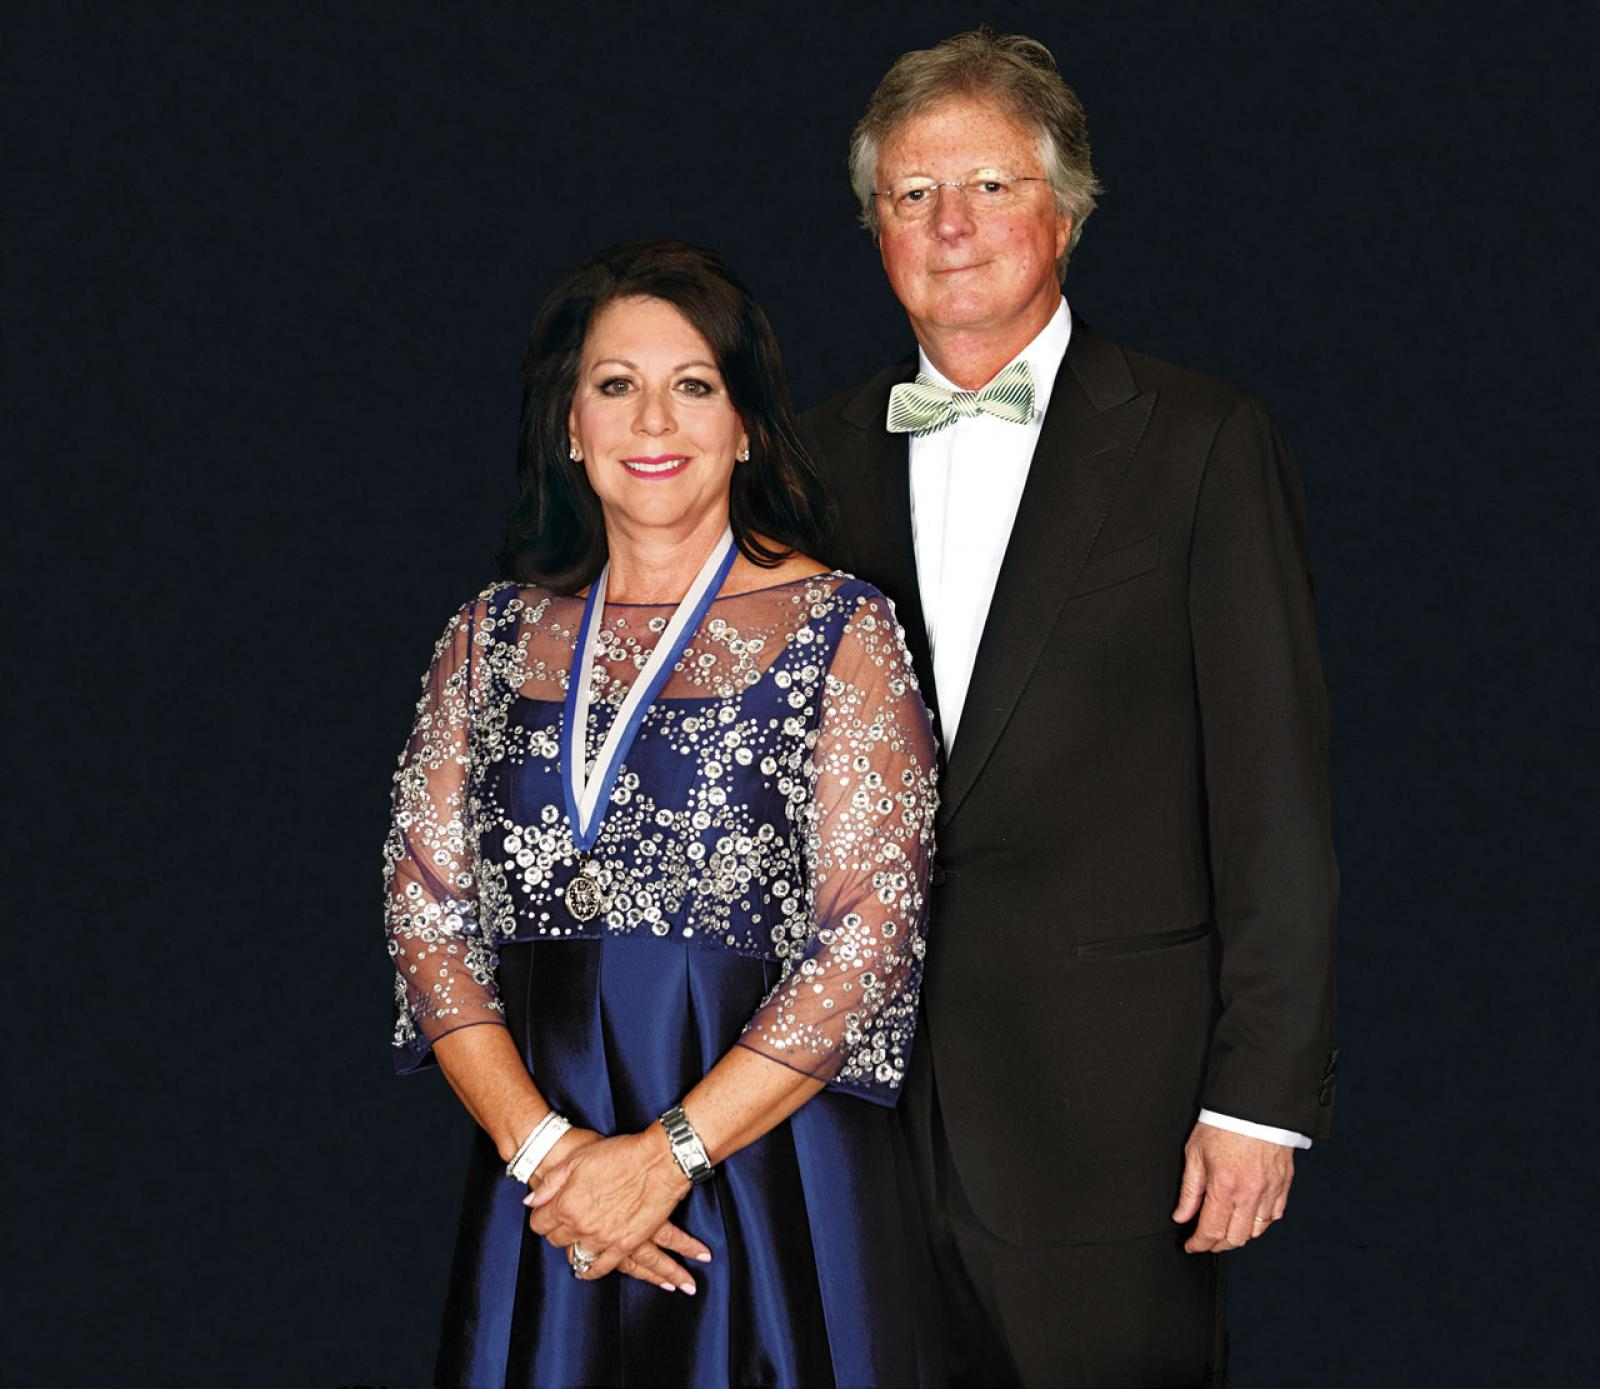 Fran Buckley (NHS'78, Parent'08, '12), accompanied by her husband Tim, received Georgetown's prestigious John Carroll Award in April 2018.